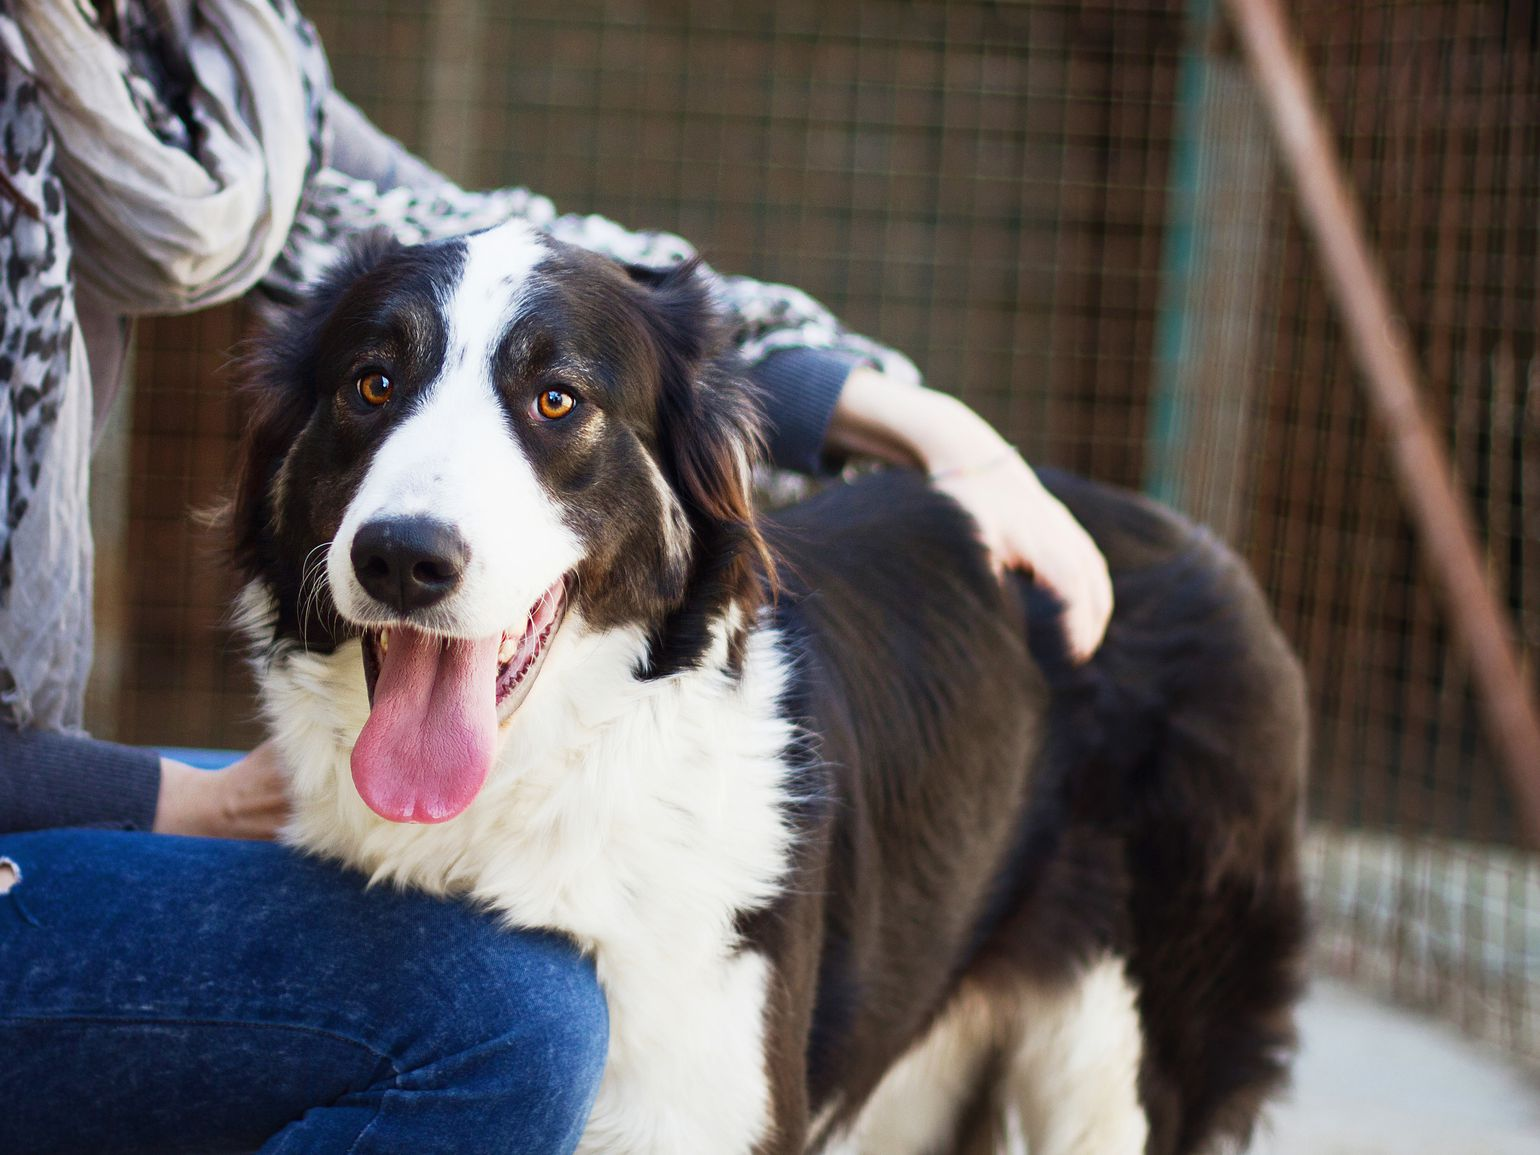 Fostering a Dog 101: All You Need to Know